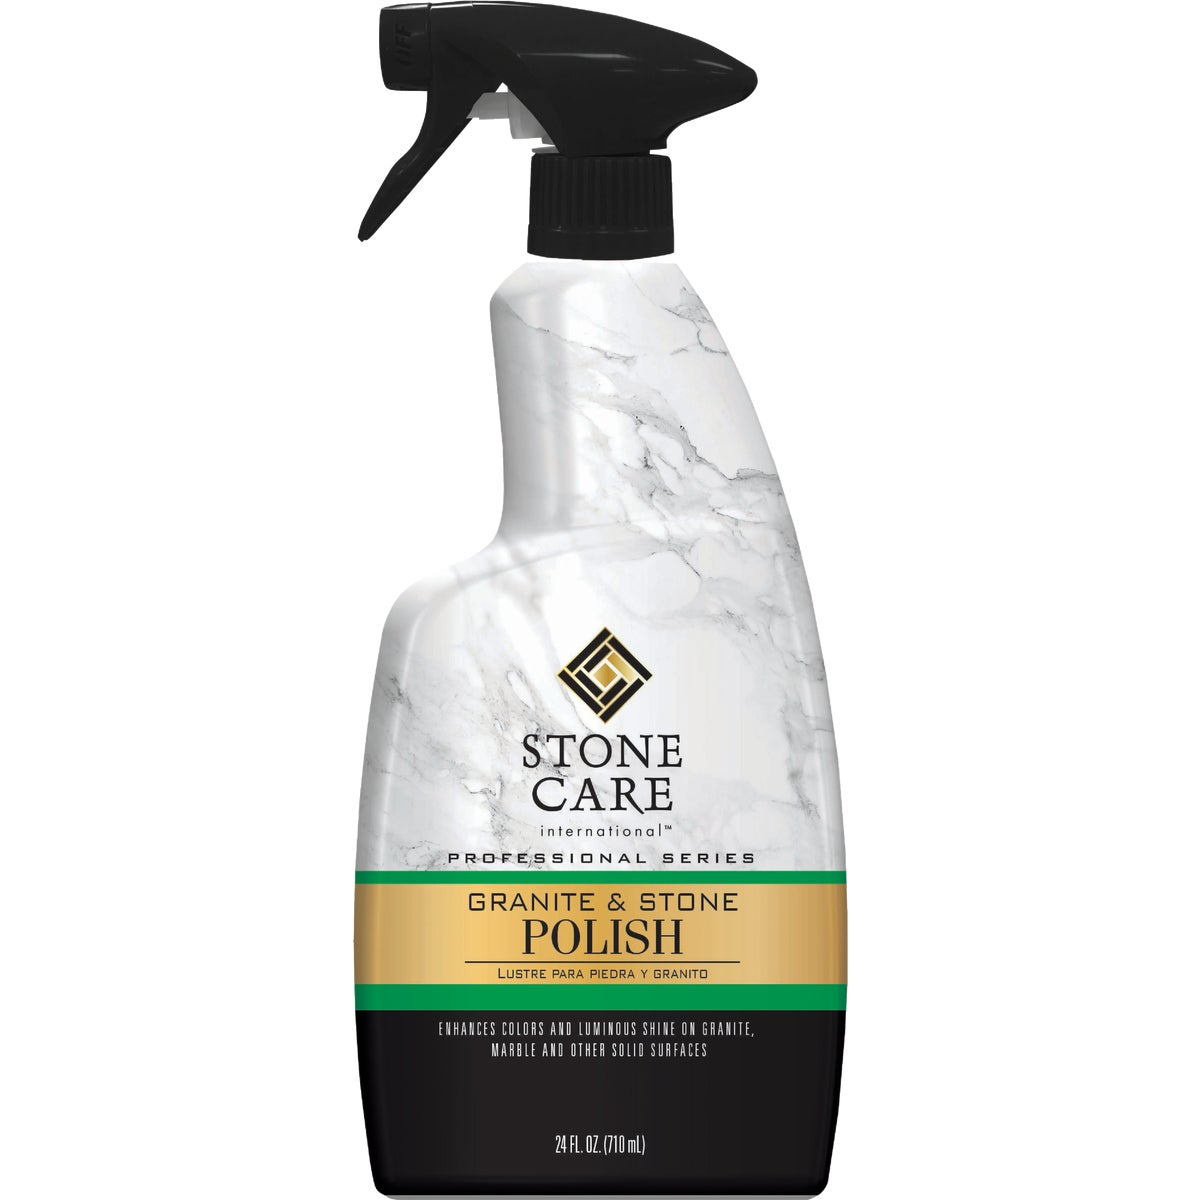 8OZ COUNTERTOP POLISH - 5137 by Weiman Products Llc